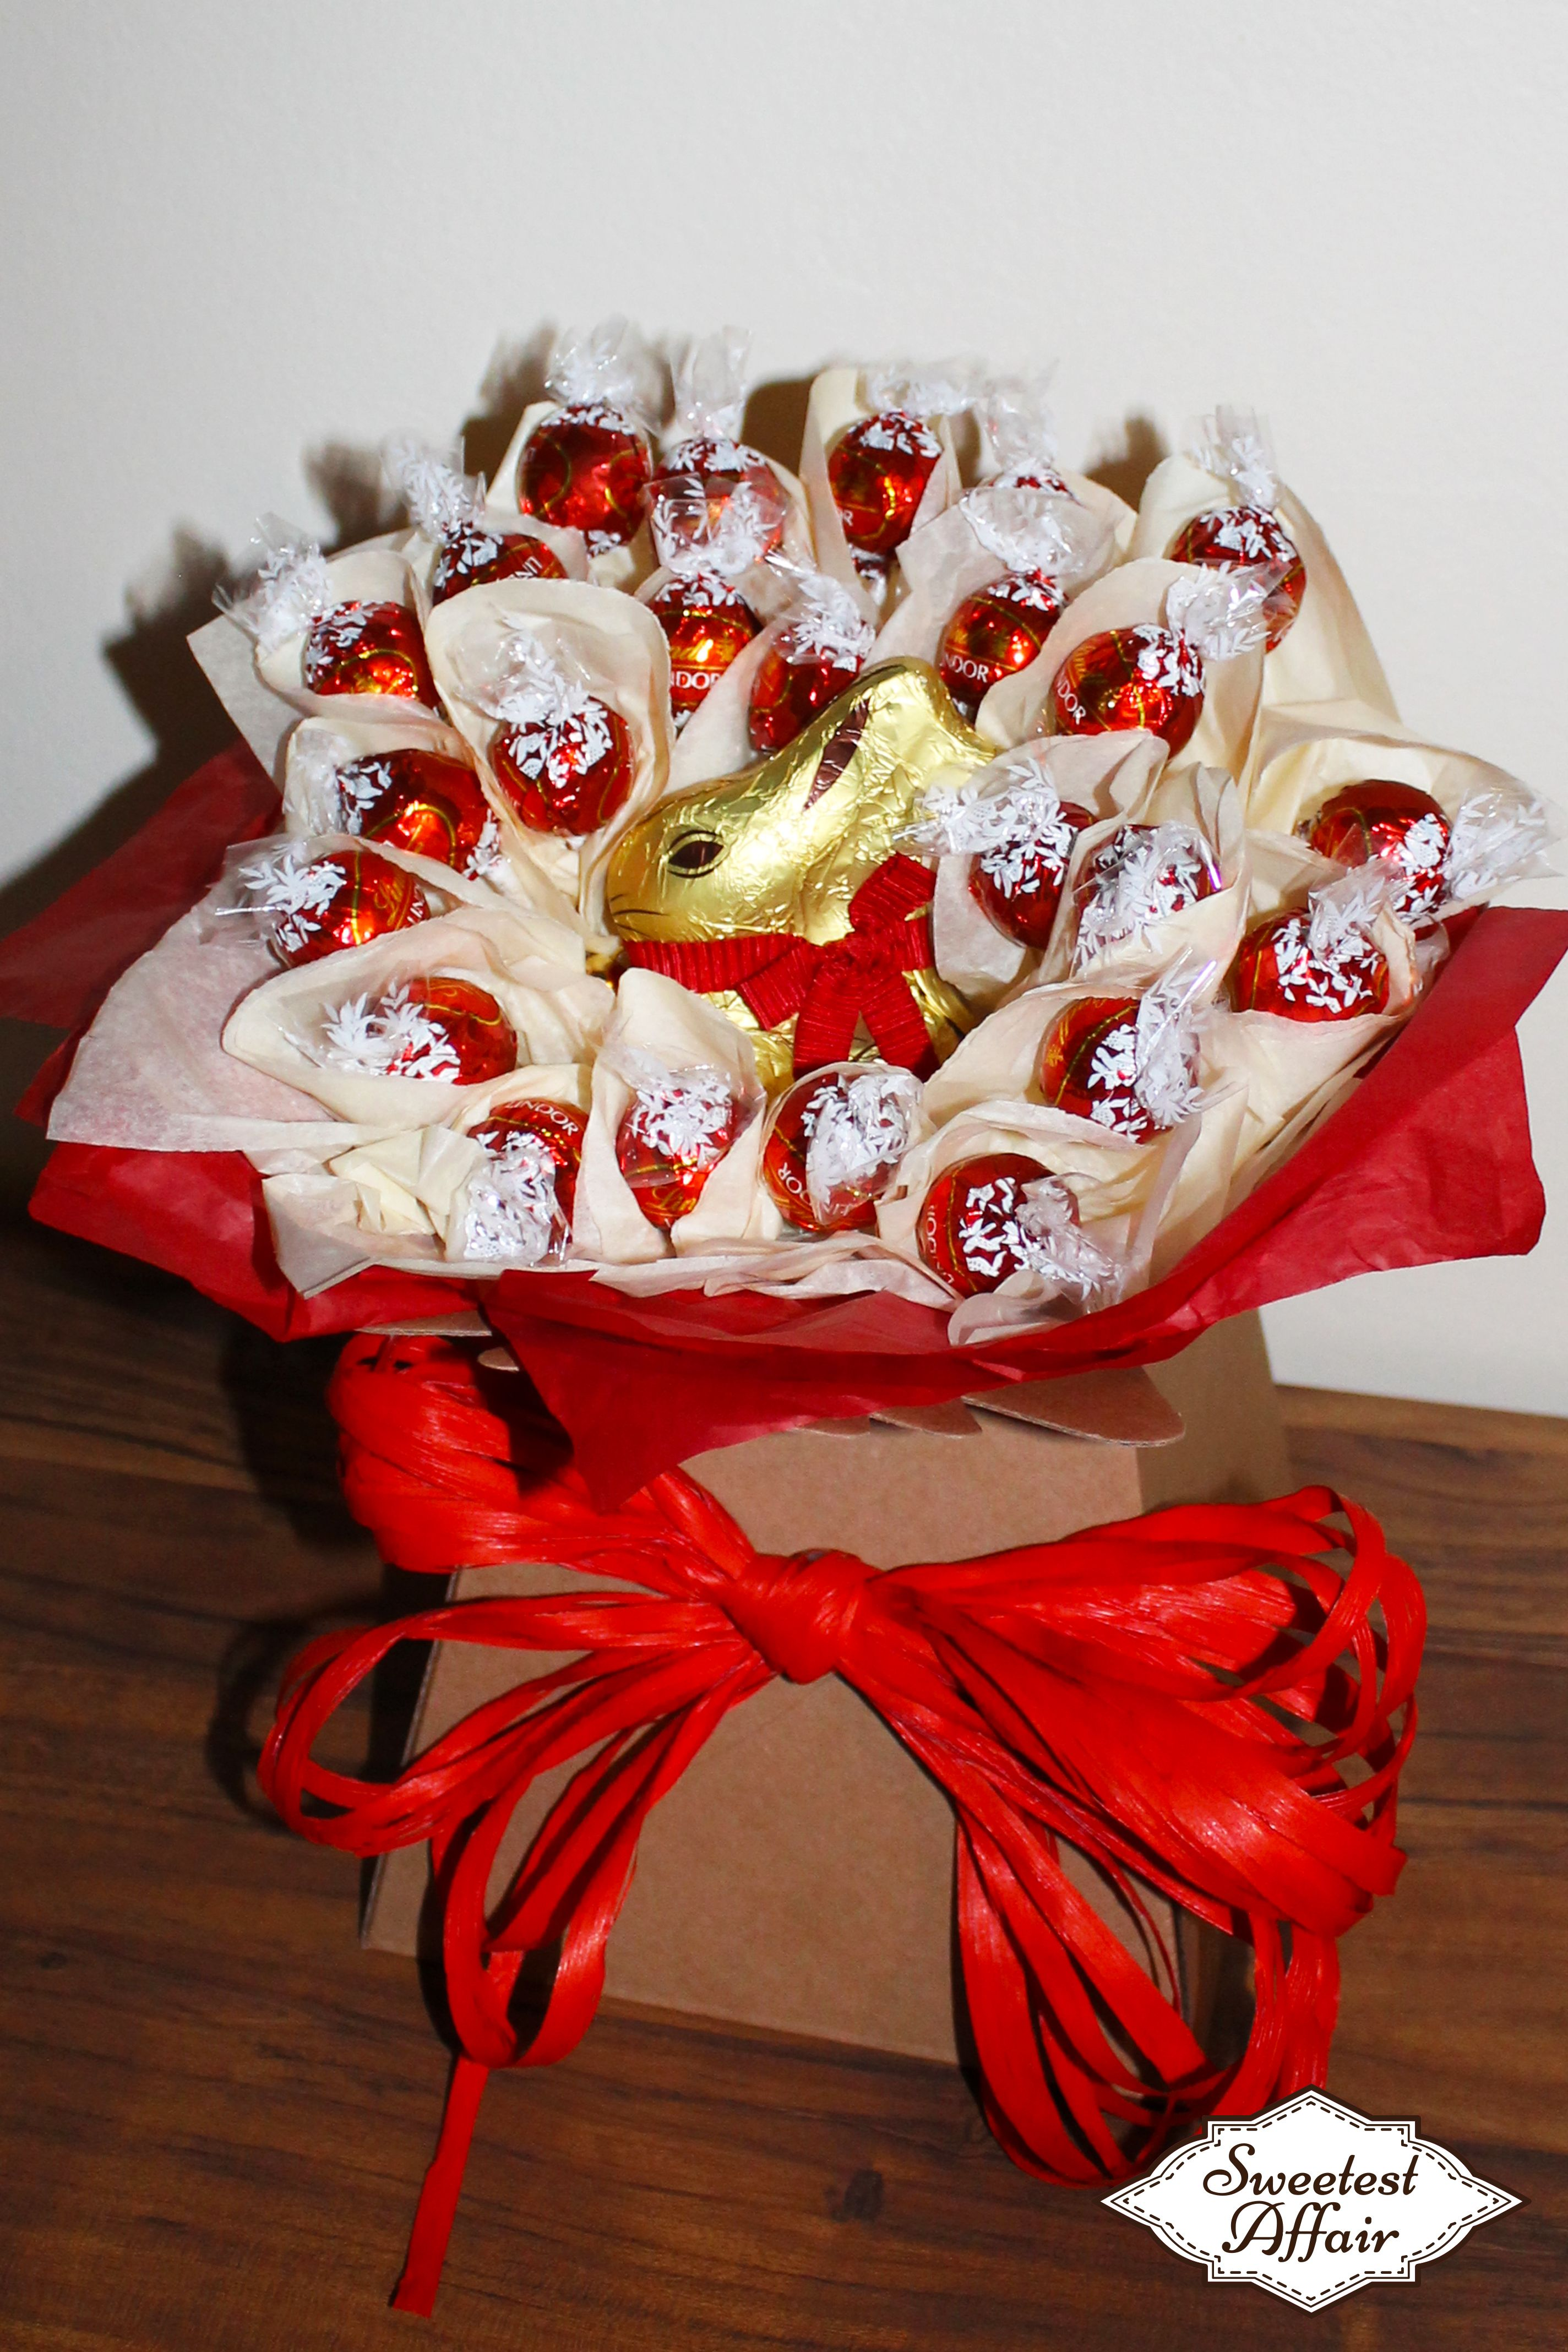 Easter lindt lindor red bunny chocolate truffles bouquet http easter lindt lindor red bunny chocolate truffles bouquet httpebay negle Images